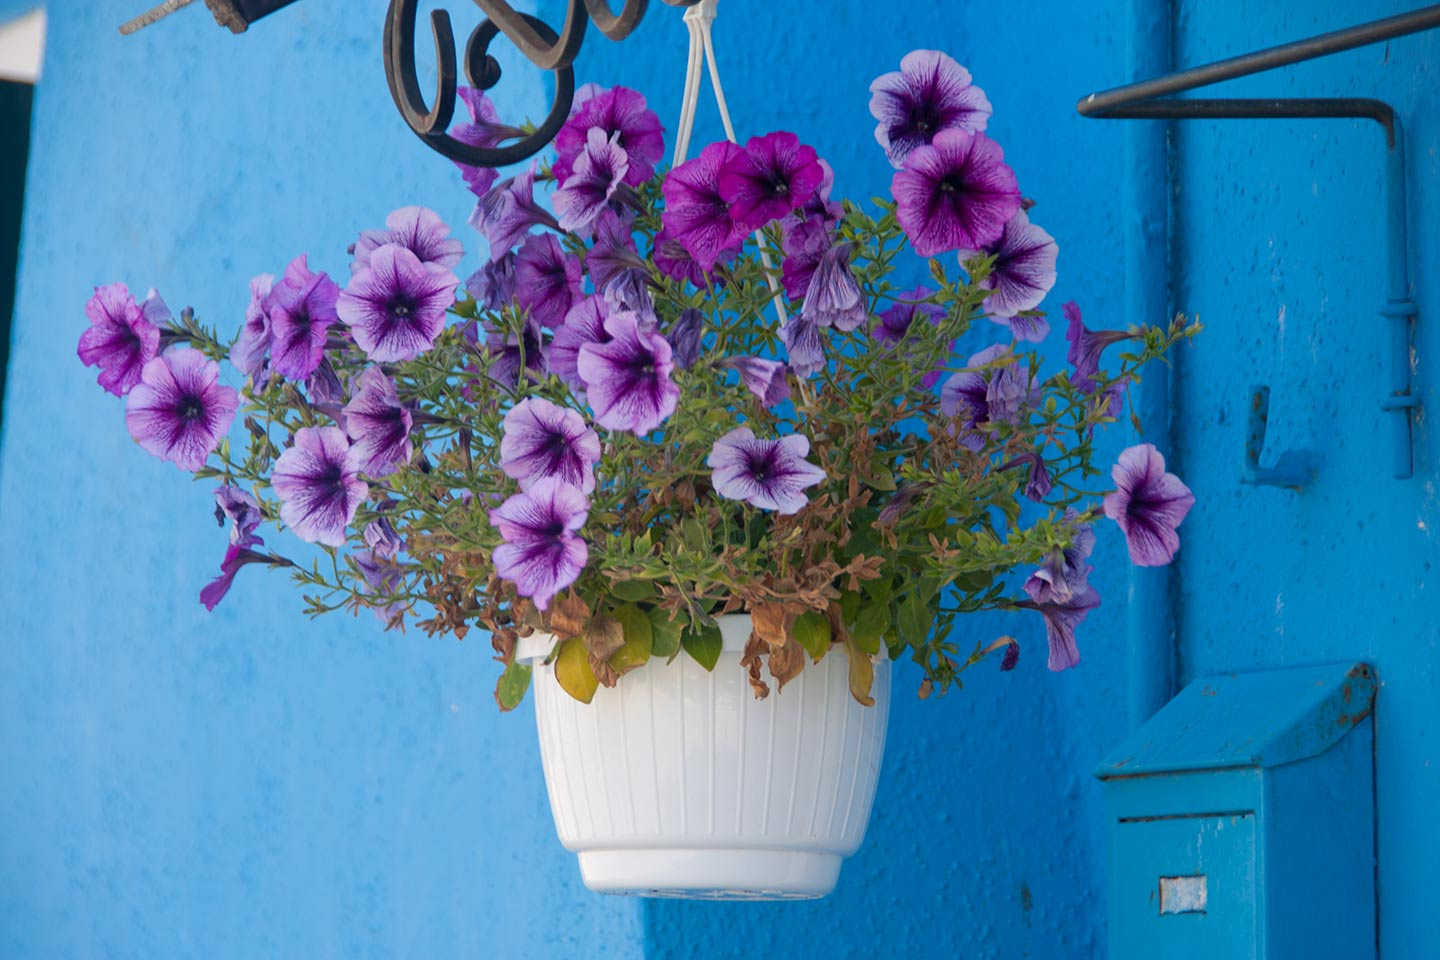 Image of a basket of flowers hanging outside a blue Burano house